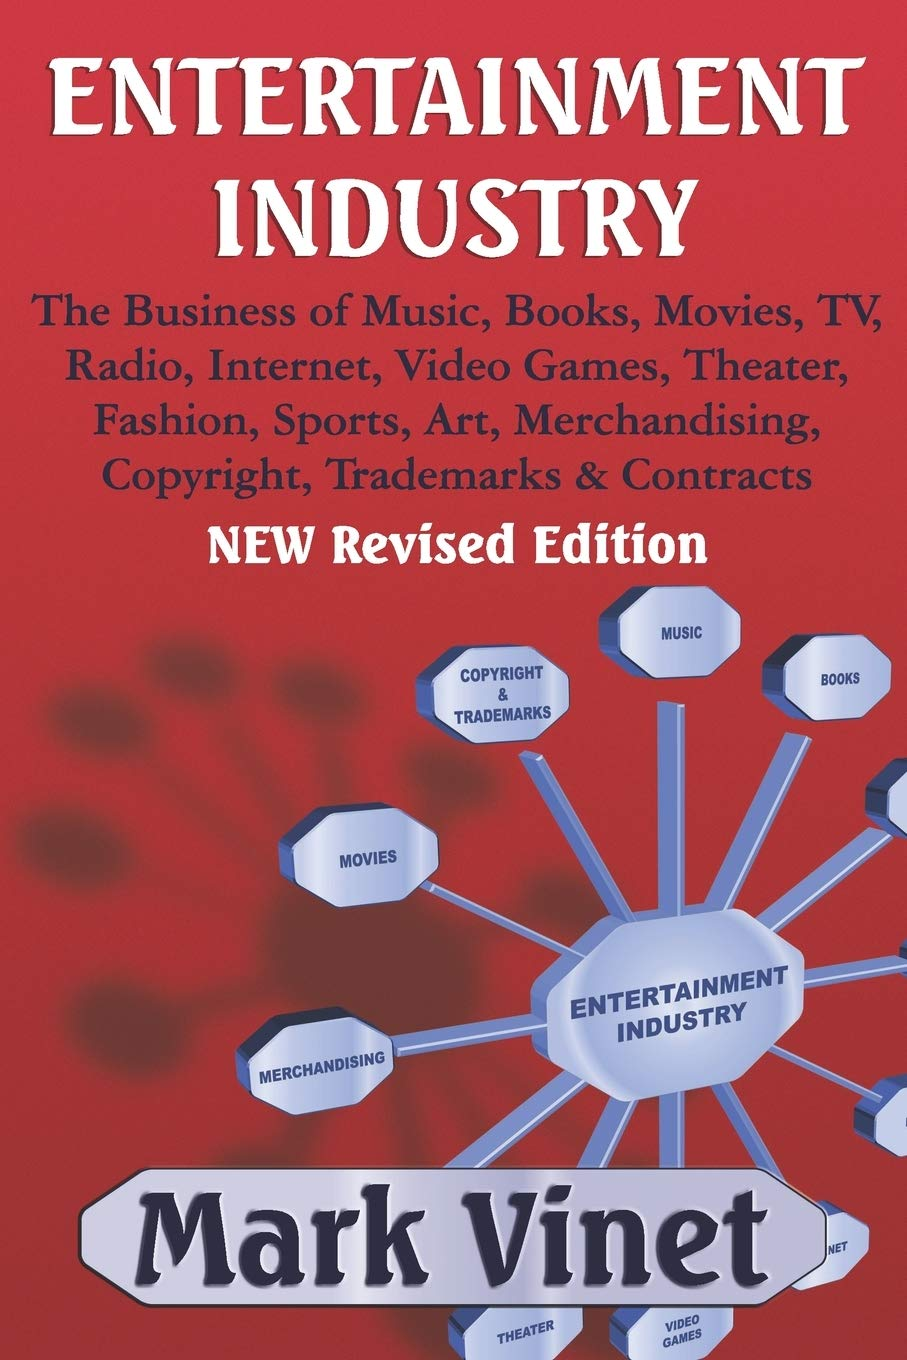 ENTERTAINMENT INDUSTRY: The Business of Music, Books, Movies, TV, Radio, Internet, Video Games, Theater, Fashion, Sports, Art, Merchandising, Copyright, Trademarks & Contracts – NEW Revised Edition